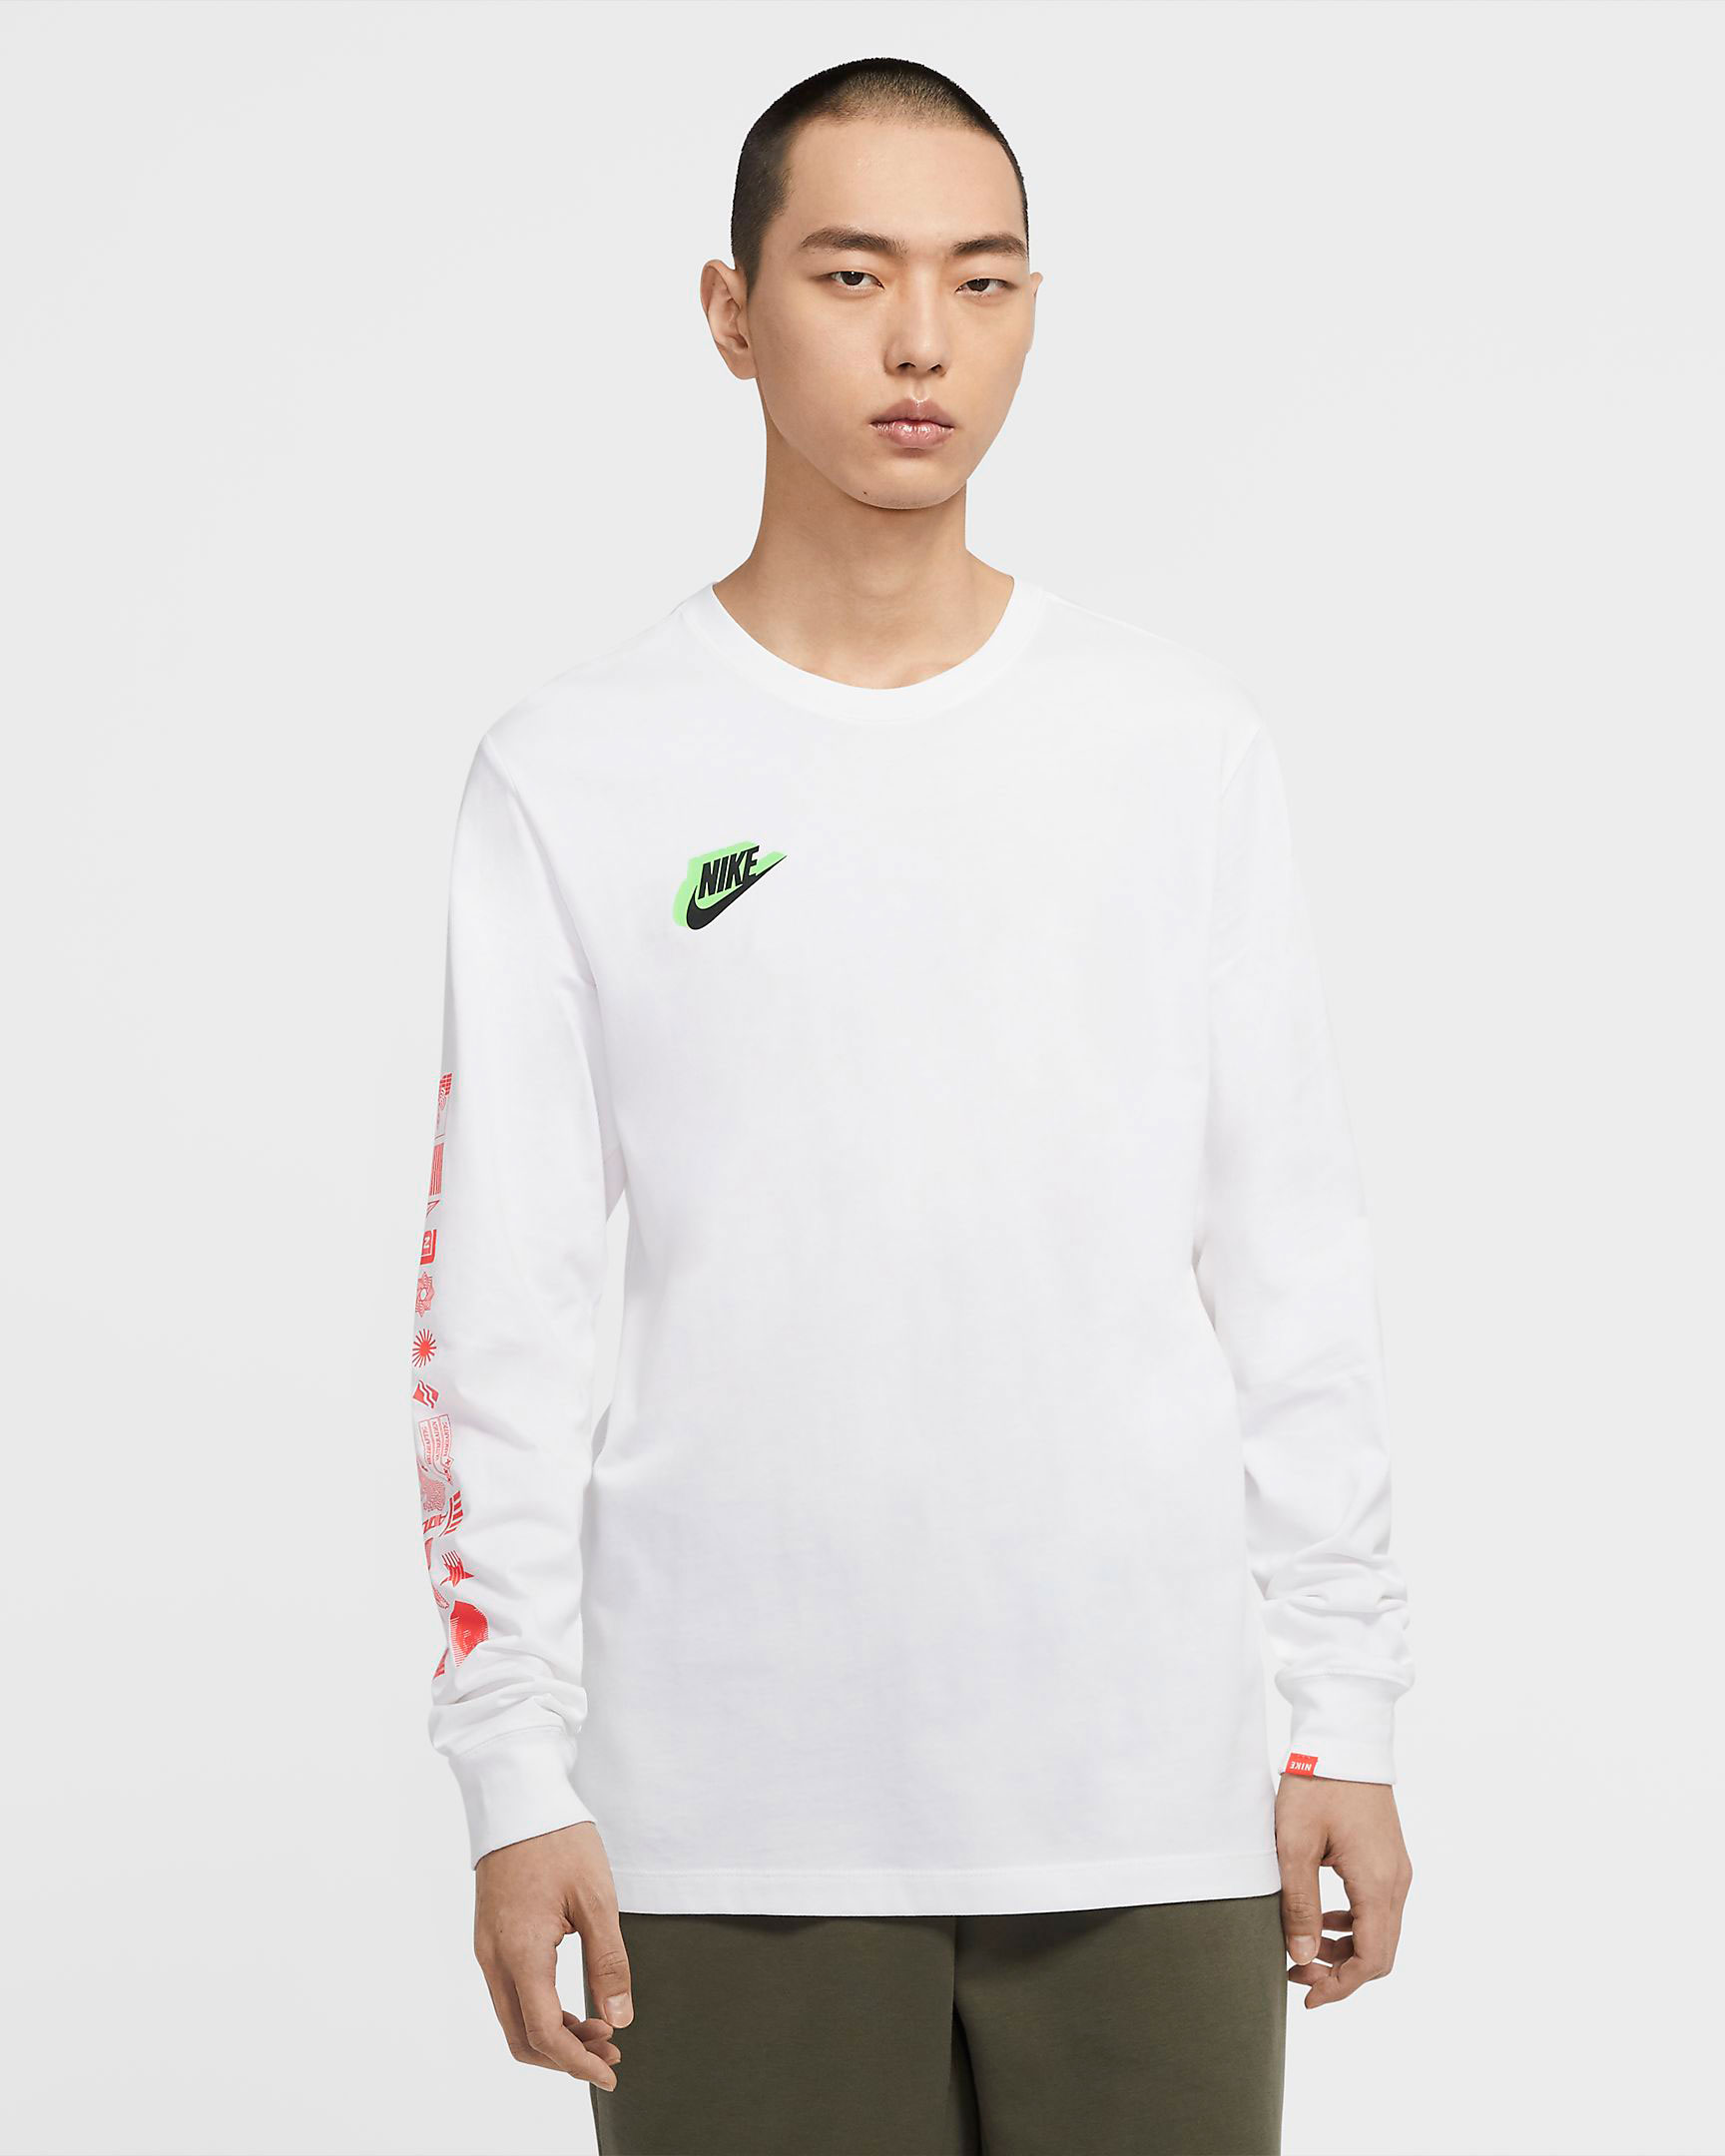 nike-worldwide-long-sleeve-shirt-white-1